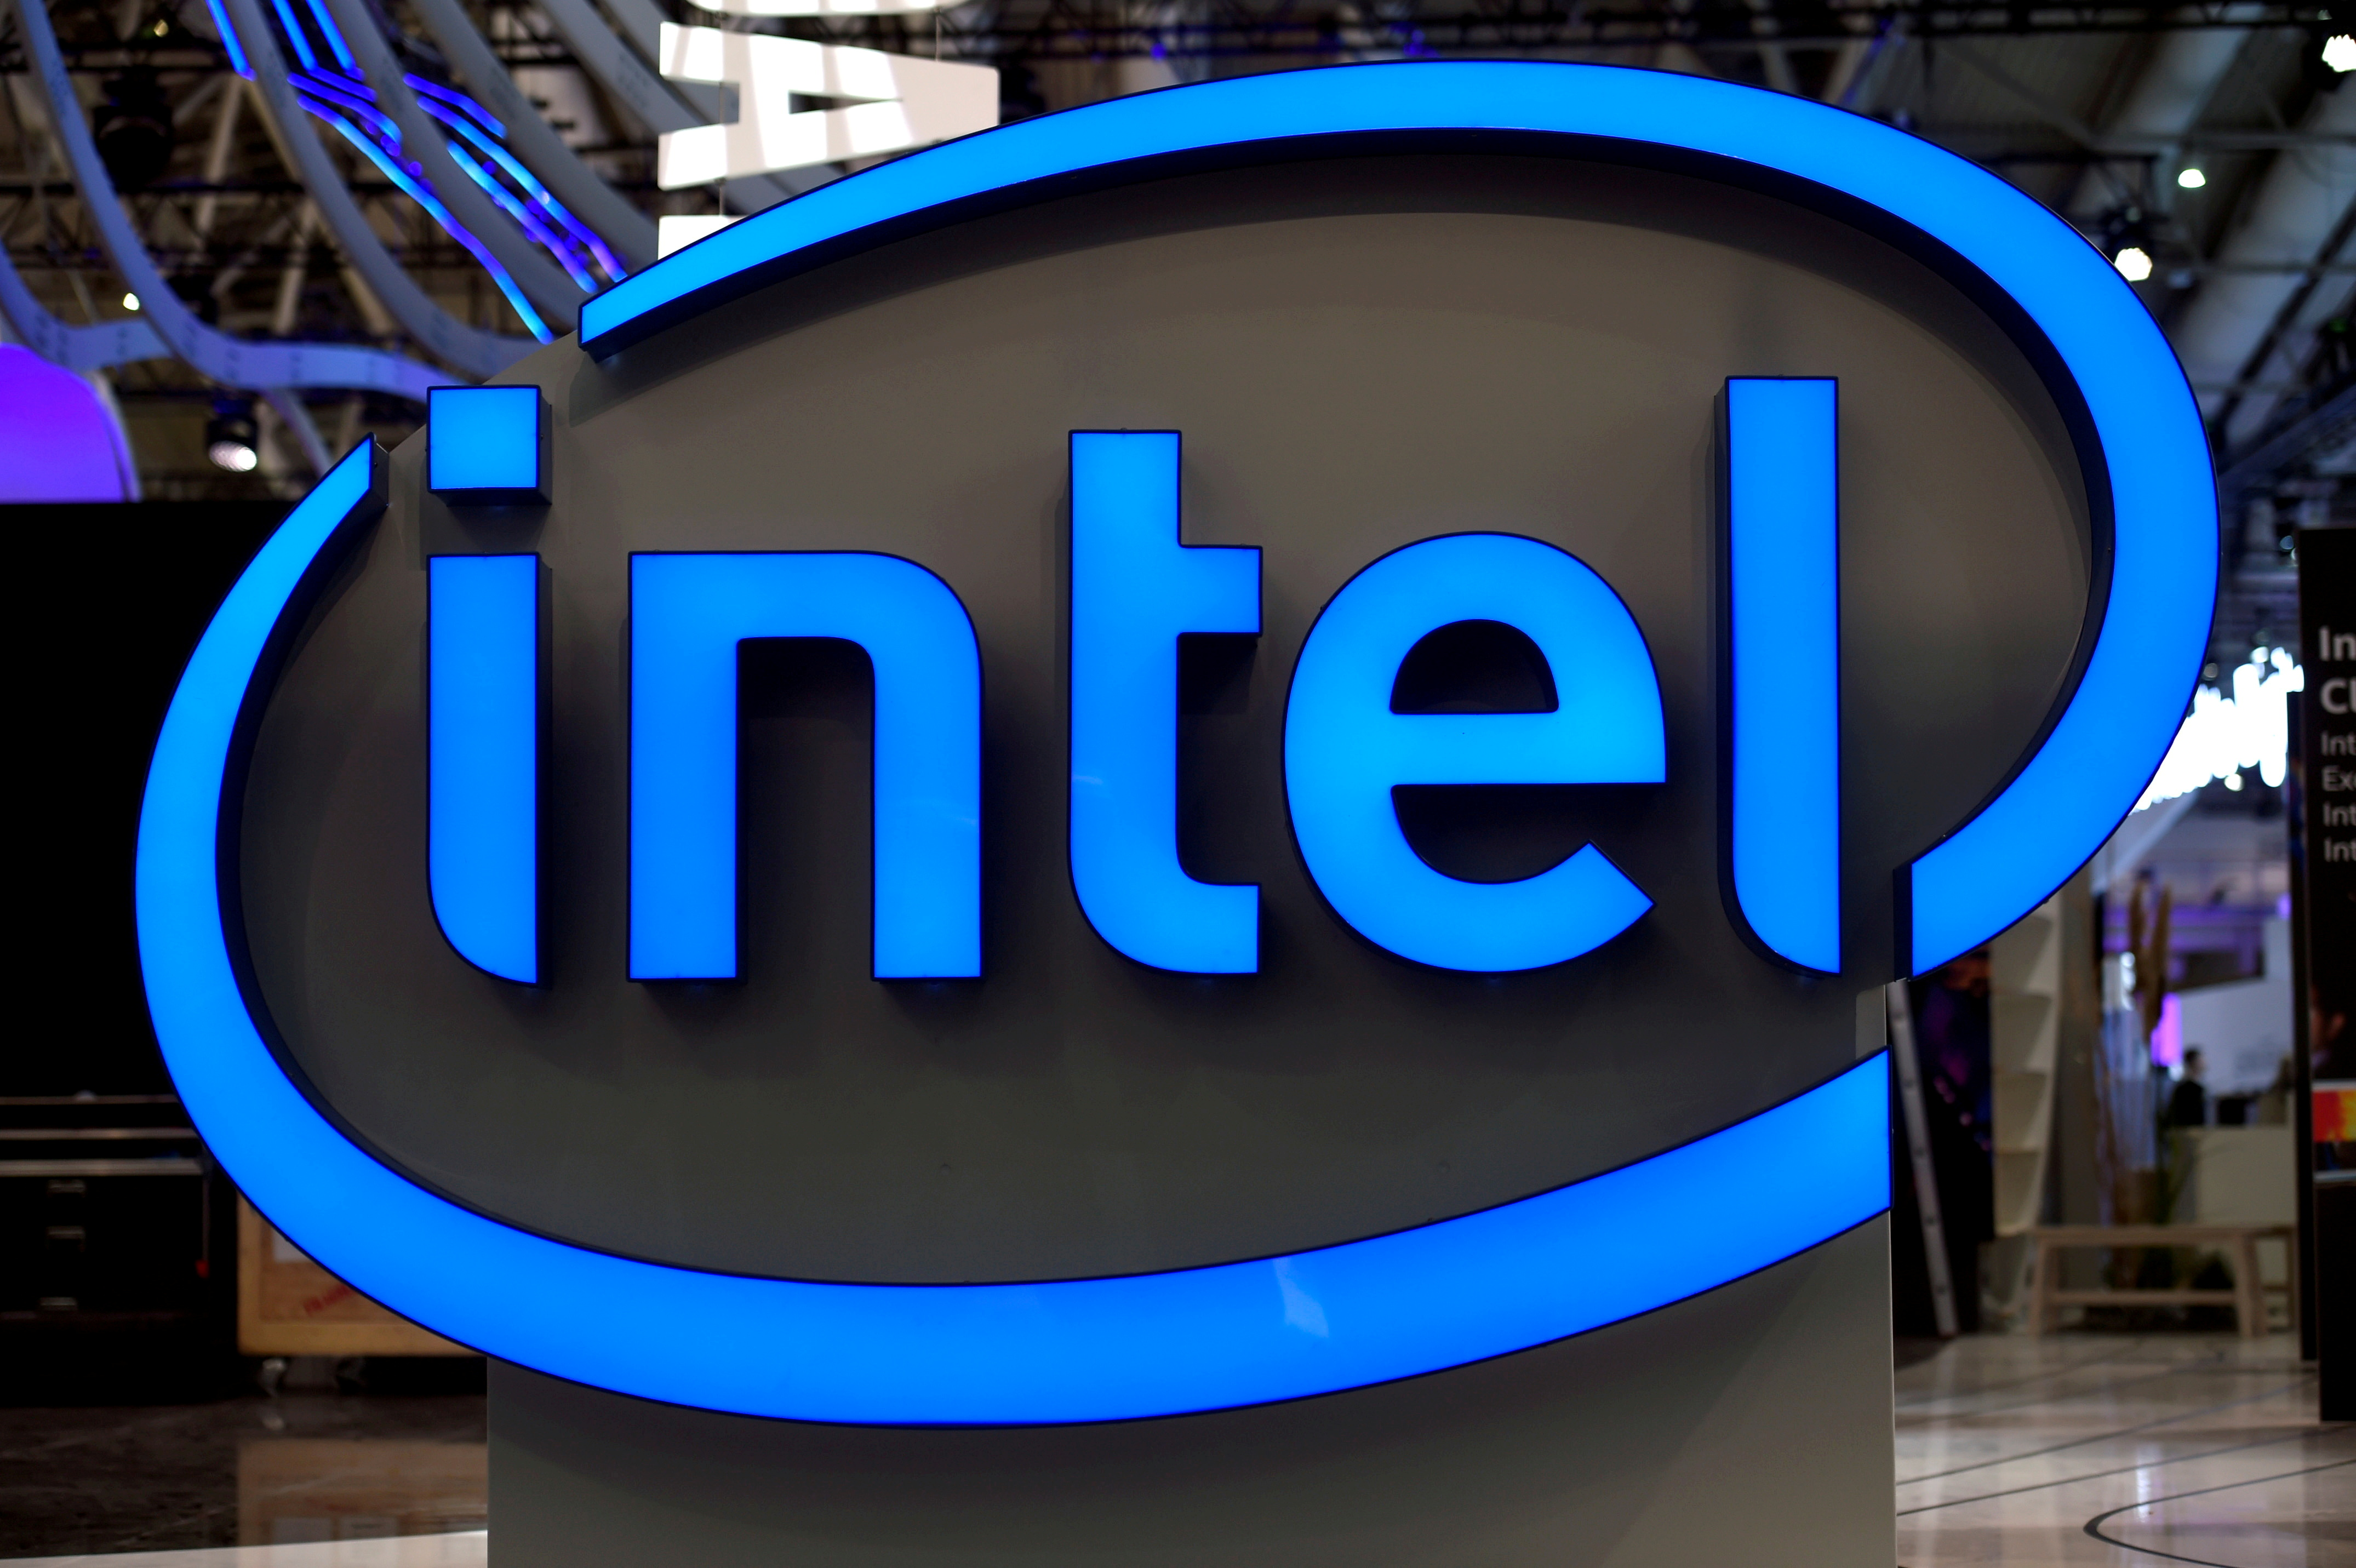 Intel's logo is pictured during preparations at the CeBit computer fair, which will open its doors to the public on March 20, at the fairground in Hanover, Germany, March 19, 2017.  REUTERS/Fabian Bimmer/File Photo